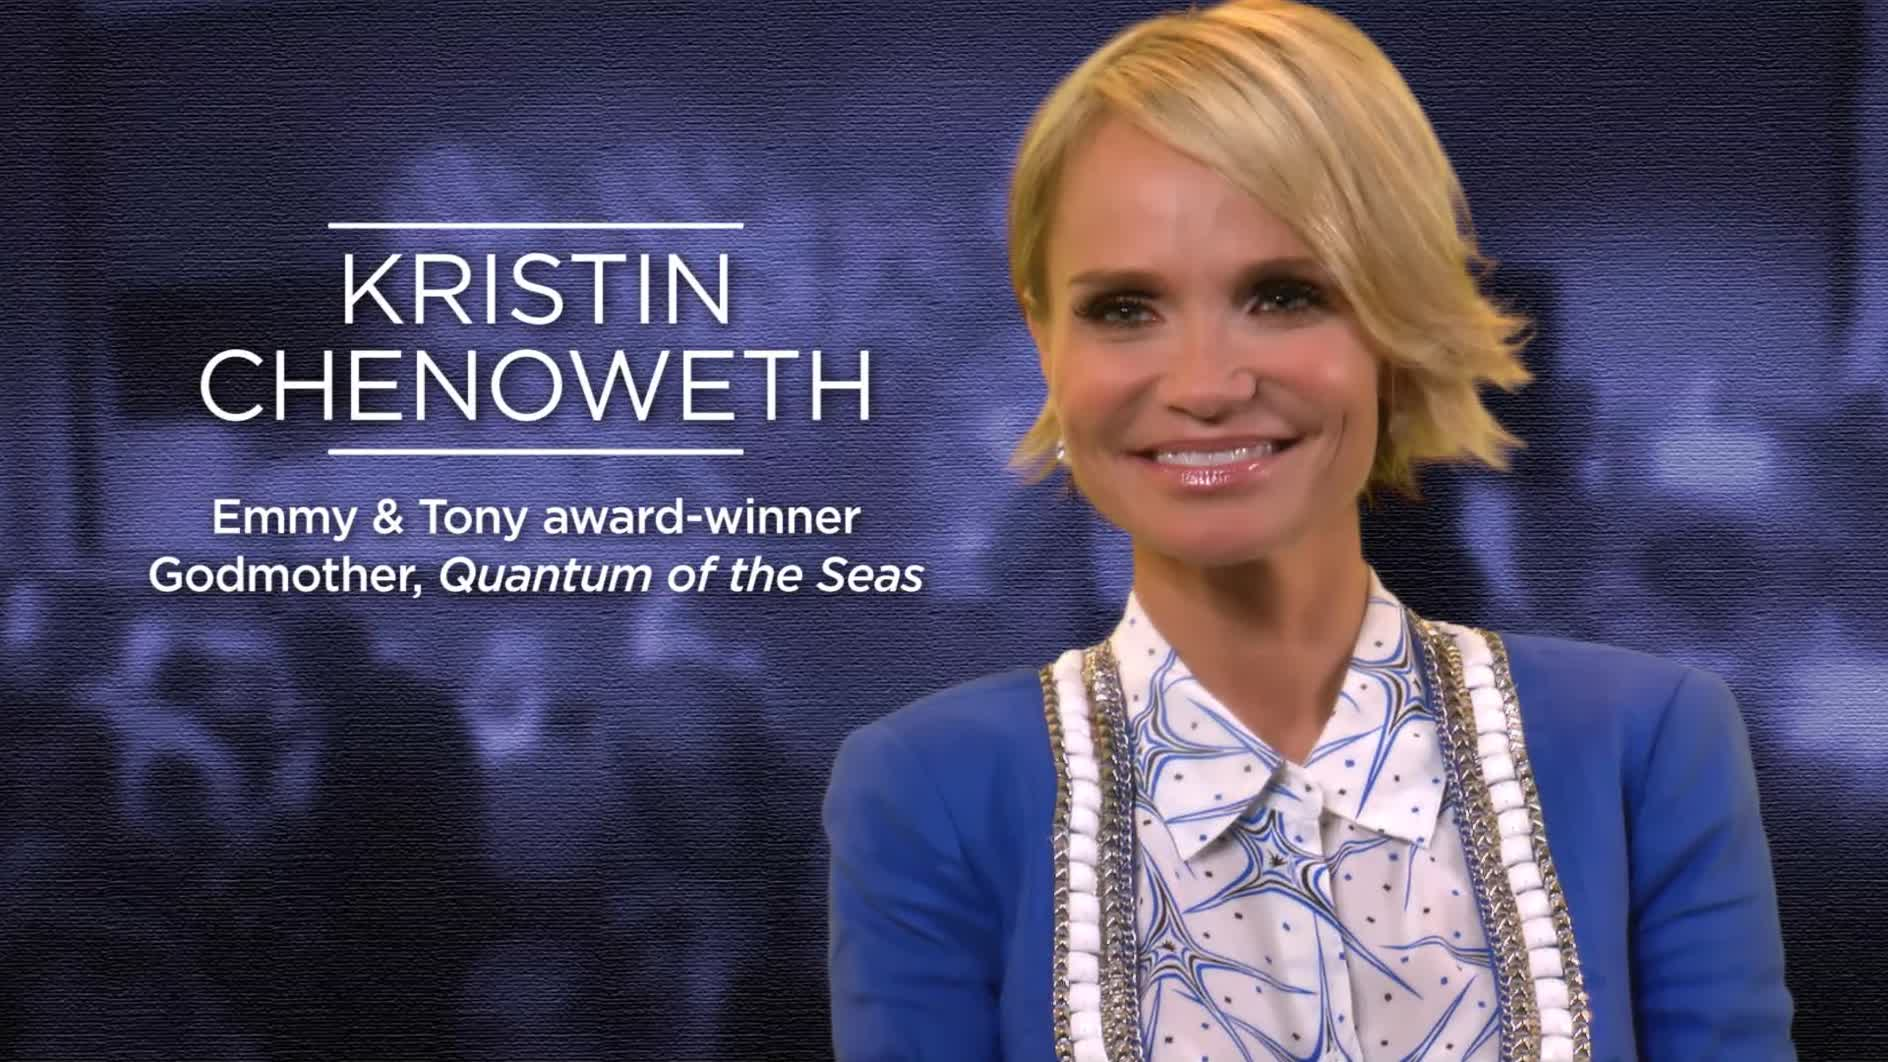 Kristin Chenoweth Plays Expanded Role With Royal Caribbean As Quantum Experience Advisor for Entertainment